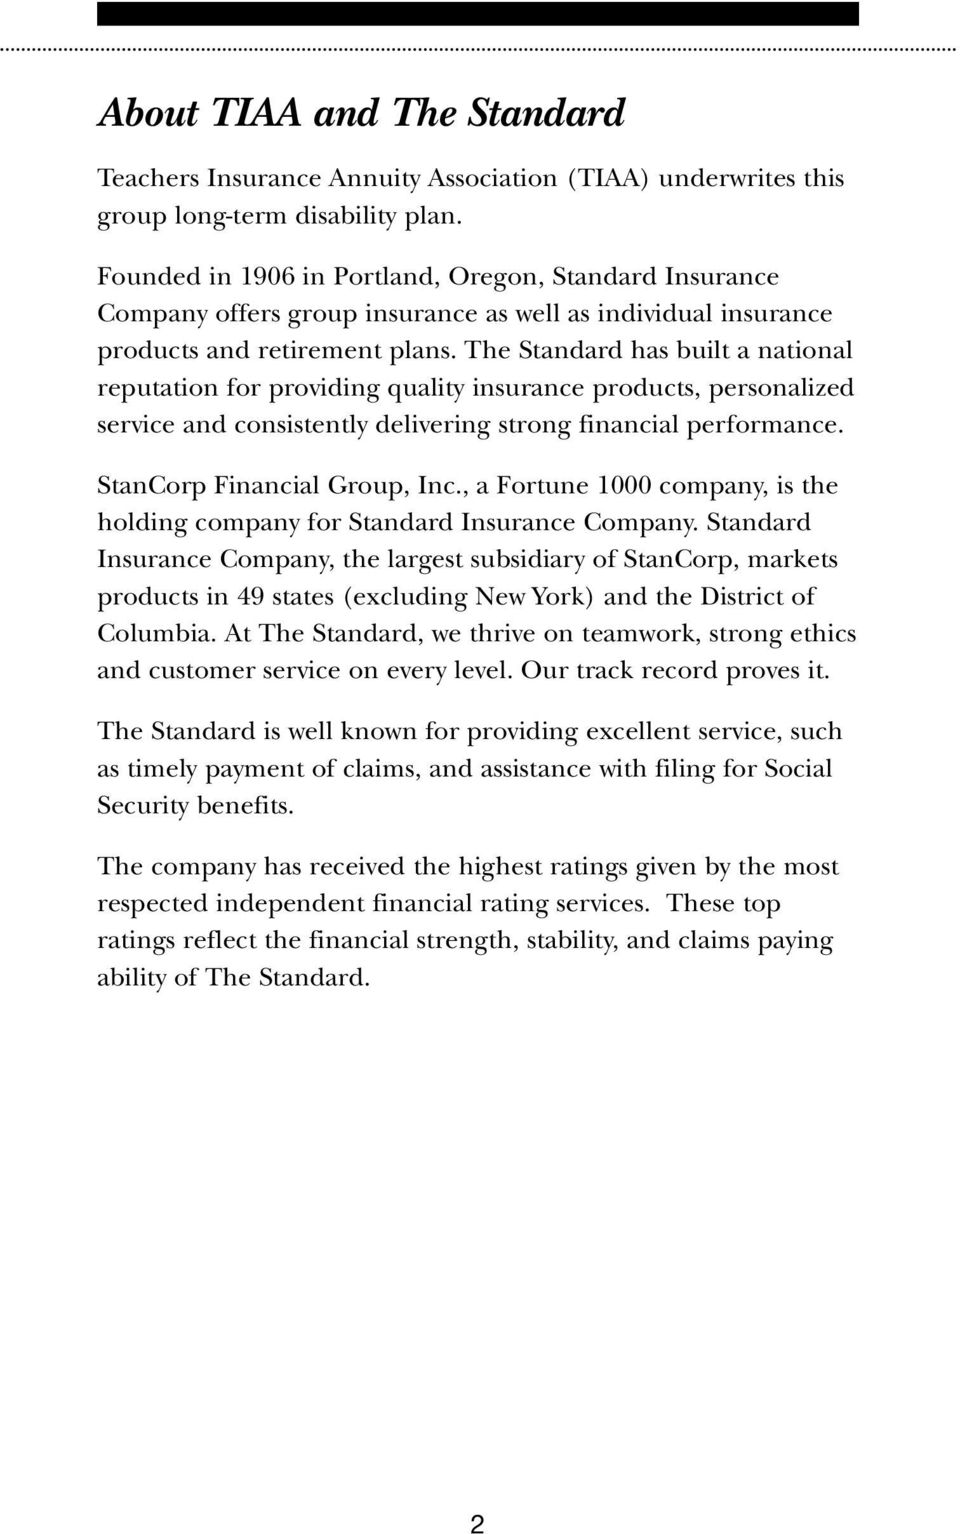 The Standard has built a national reputation for providing quality insurance products, personalized service and consistently delivering strong financial performance. StanCorp Financial Group, Inc.